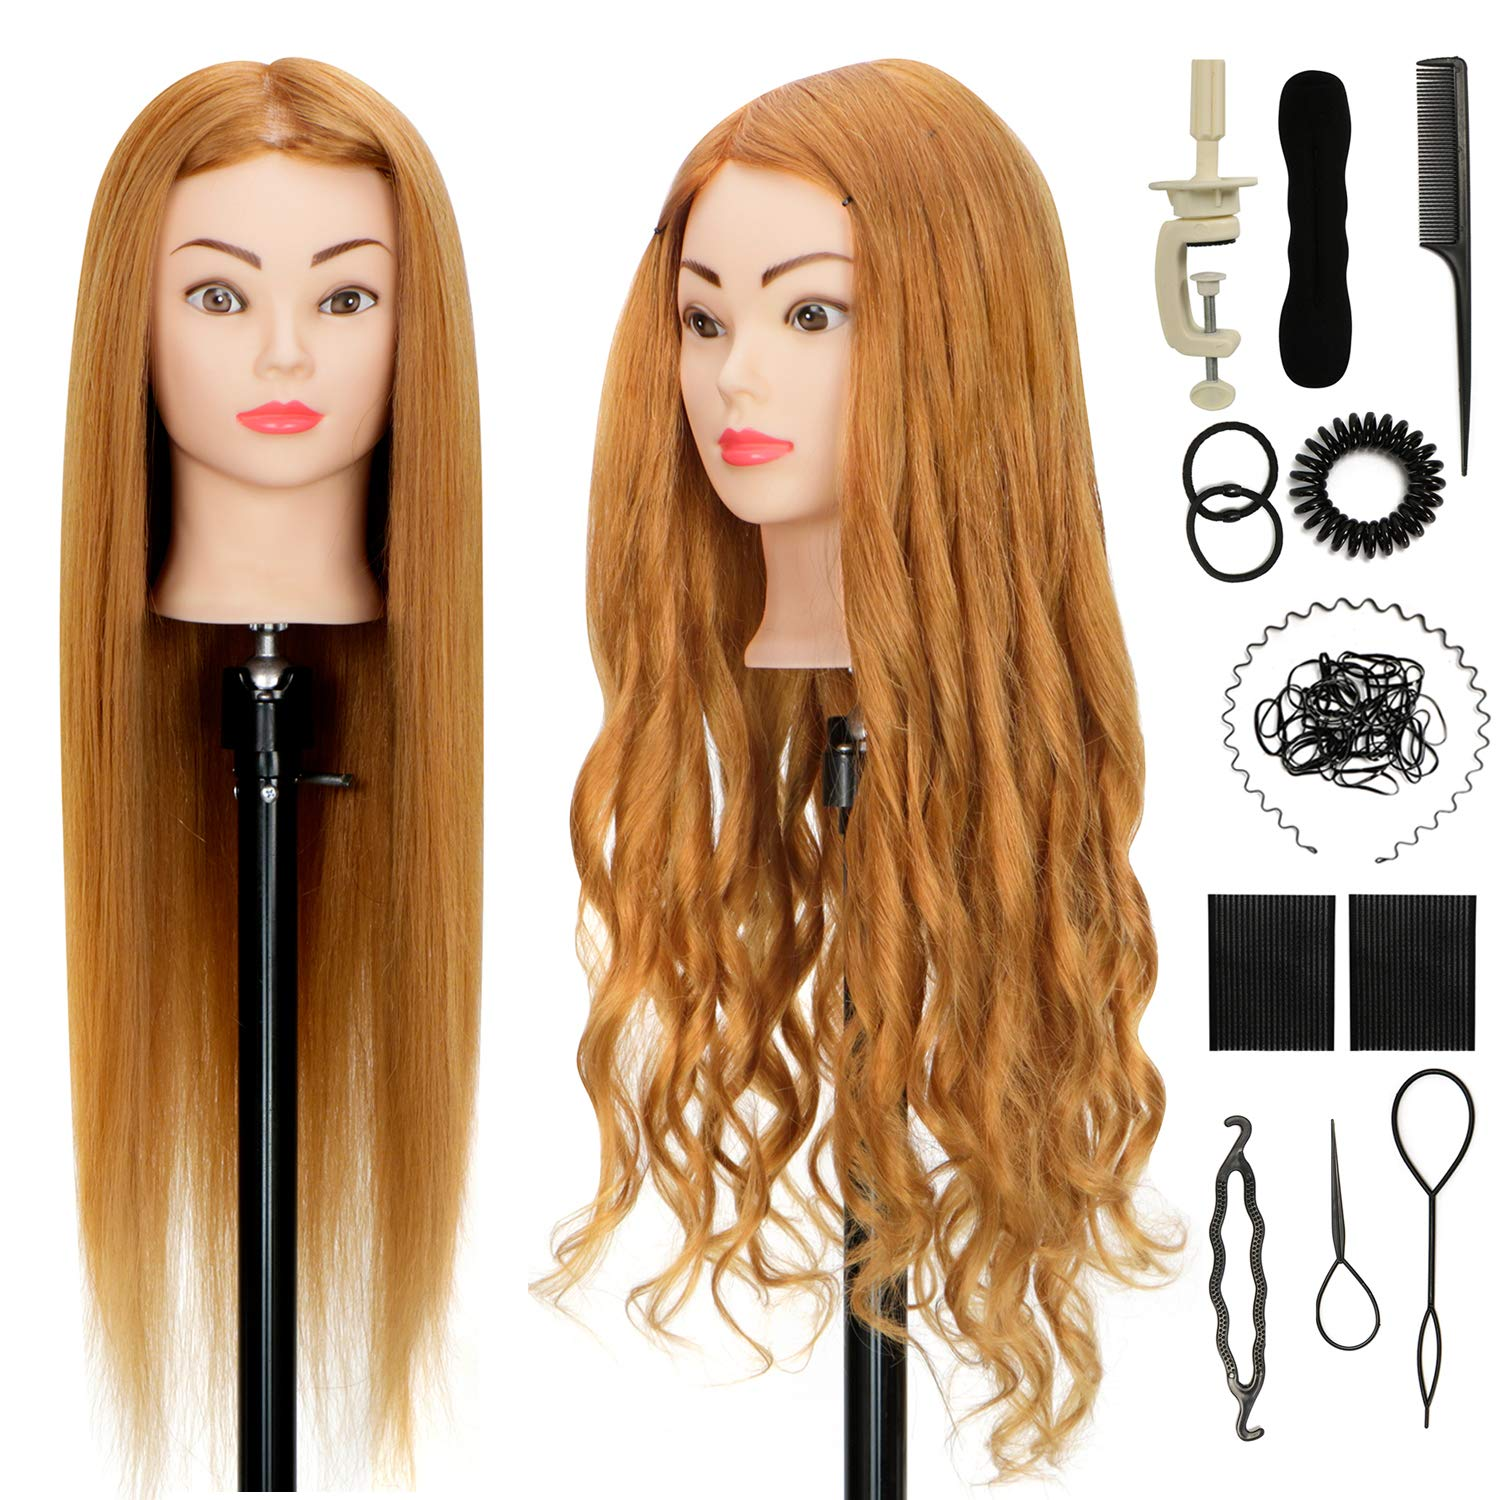 Cosmotologist Doll Head 26 Inches Cosmetology Mannequin Head With 50 Real Hair Model Head For Braiding Training Head Orguja Manikin Head Practice Doll With Clamp And Braid Set Beauty Amazon Com